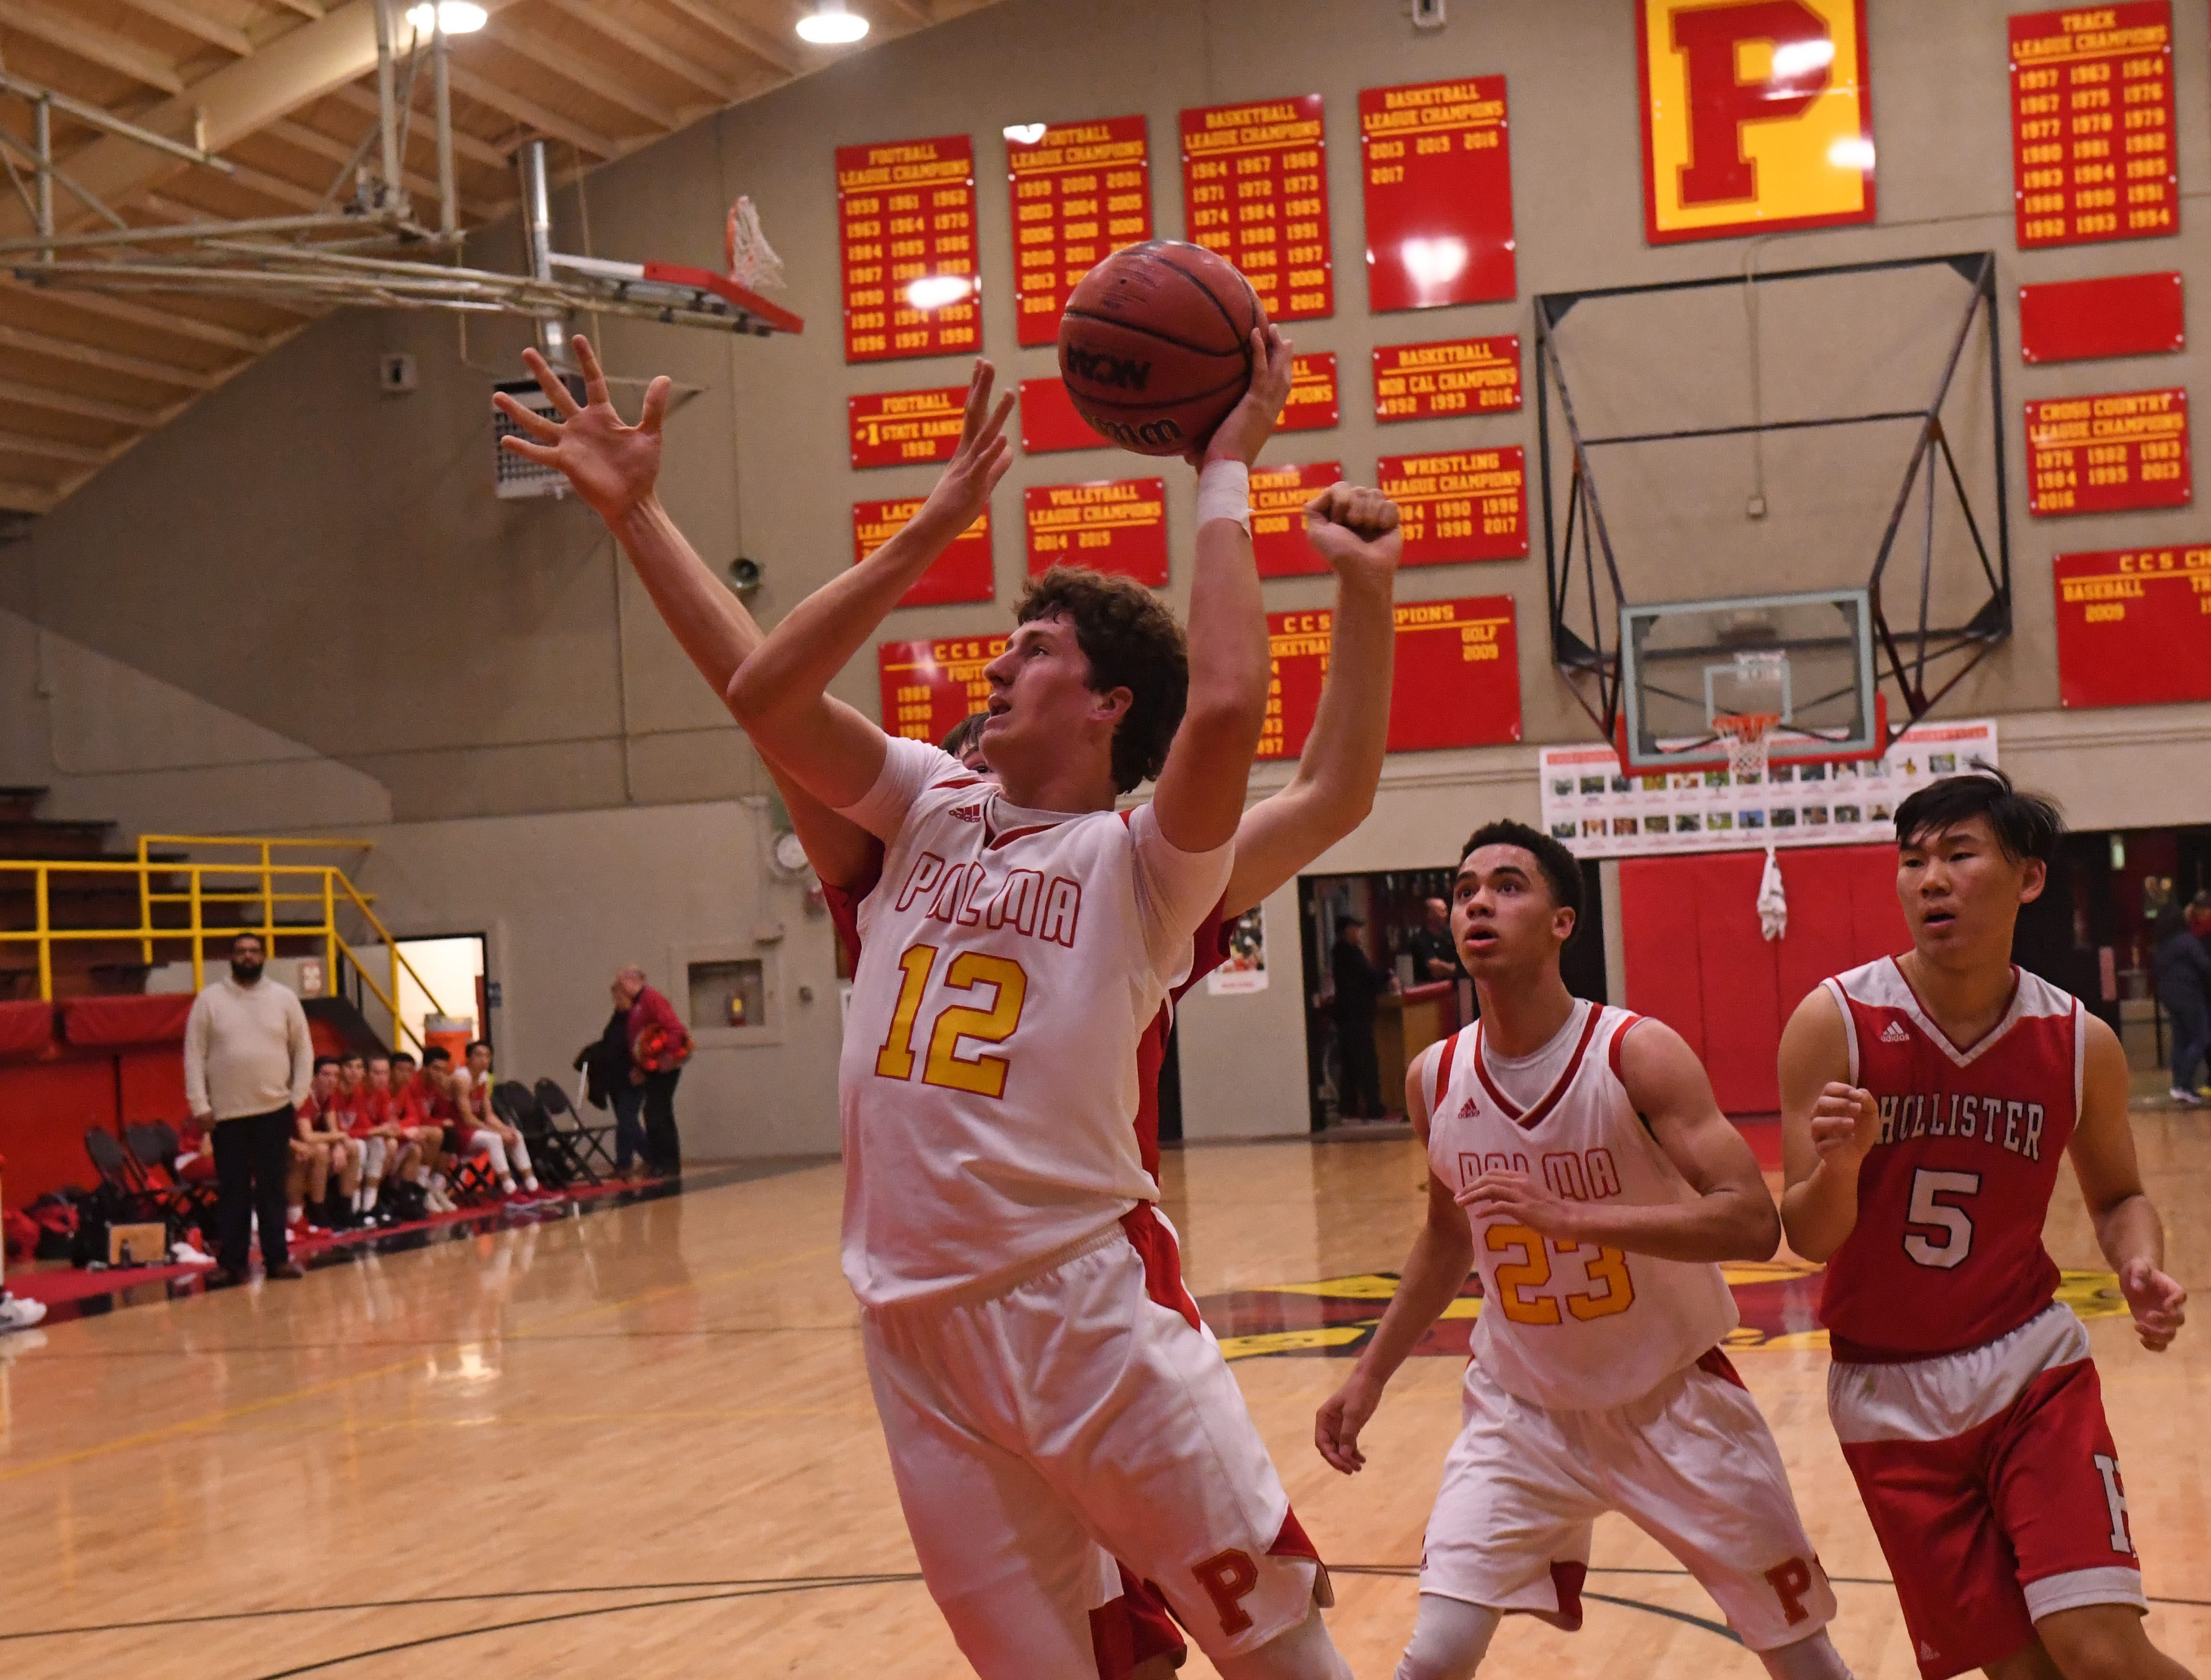 Palma forward Sam Lathos (12) goes up for a shot in the lane.